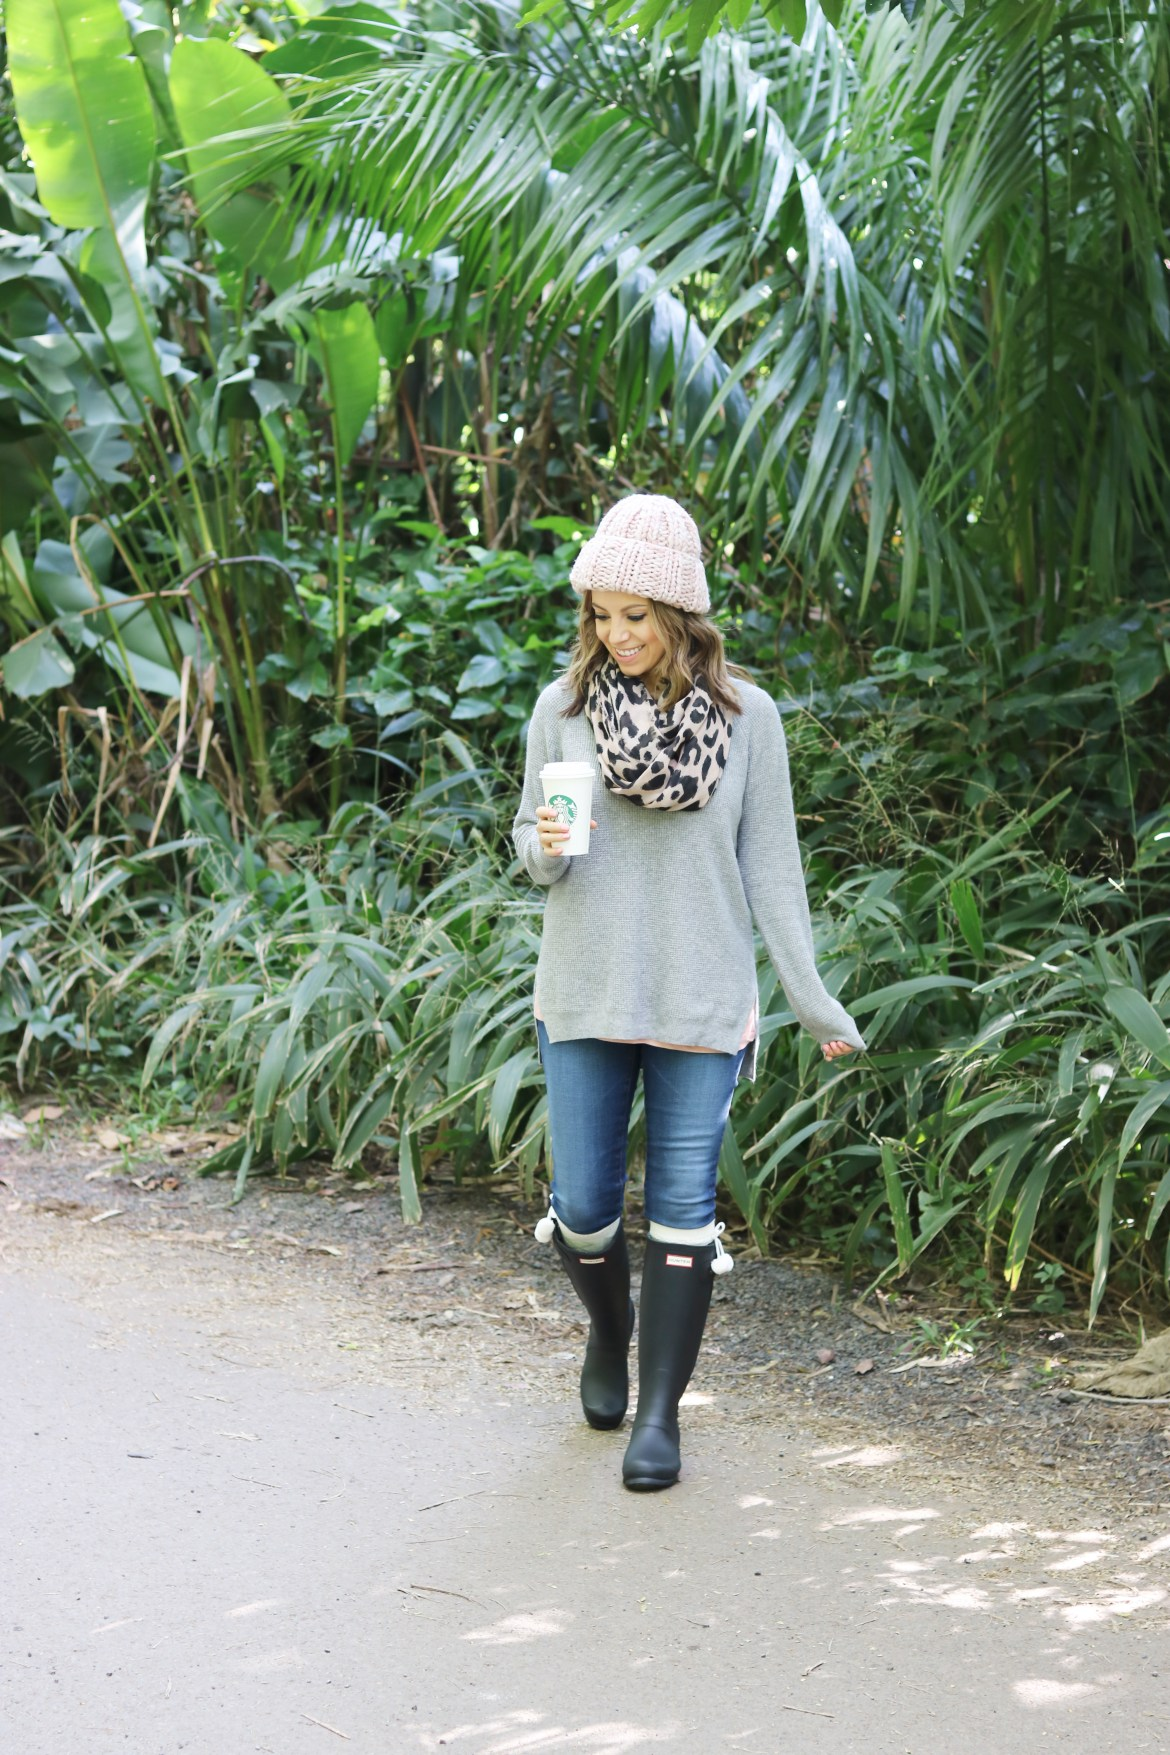 Winter Outfit Inspiration, Winter Outfit, Winter Fashion, Winter Fashion Casual